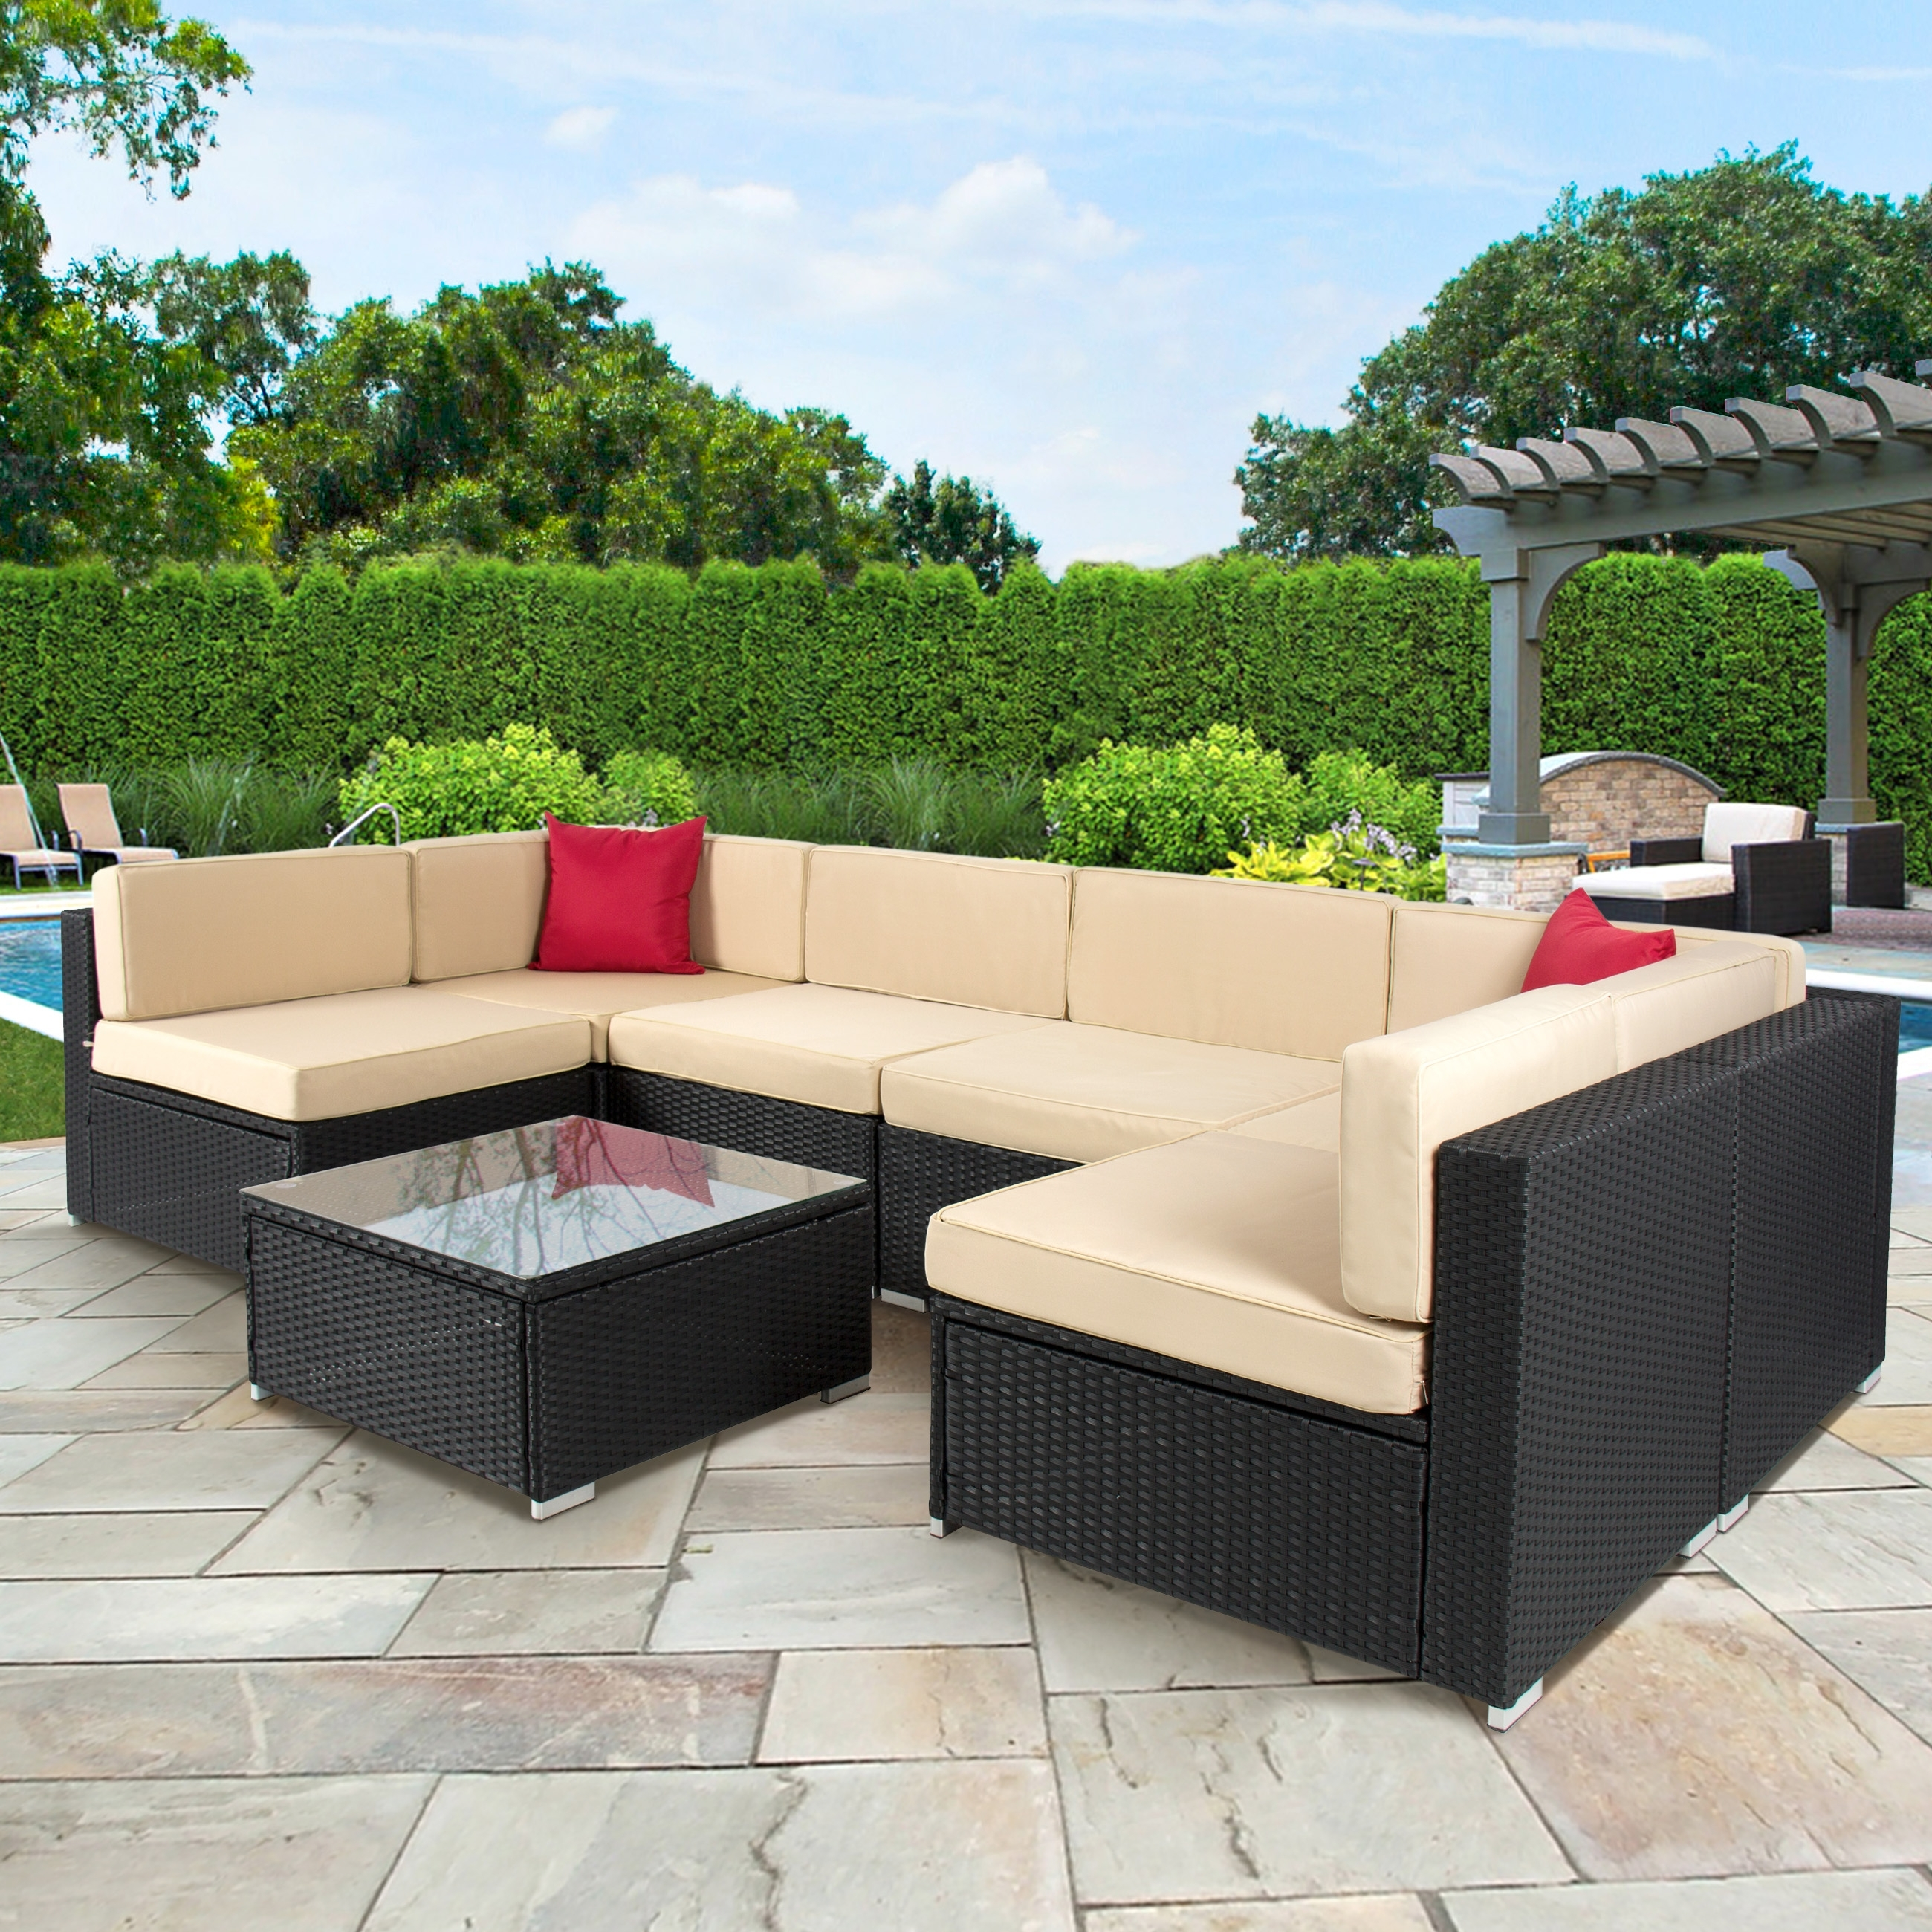 Baner Garden 4 Piece Outdoor Furniture Complete Set, Black – Walmart With Regard To Recent Patio Conversation Sets At Walmart (View 14 of 20)